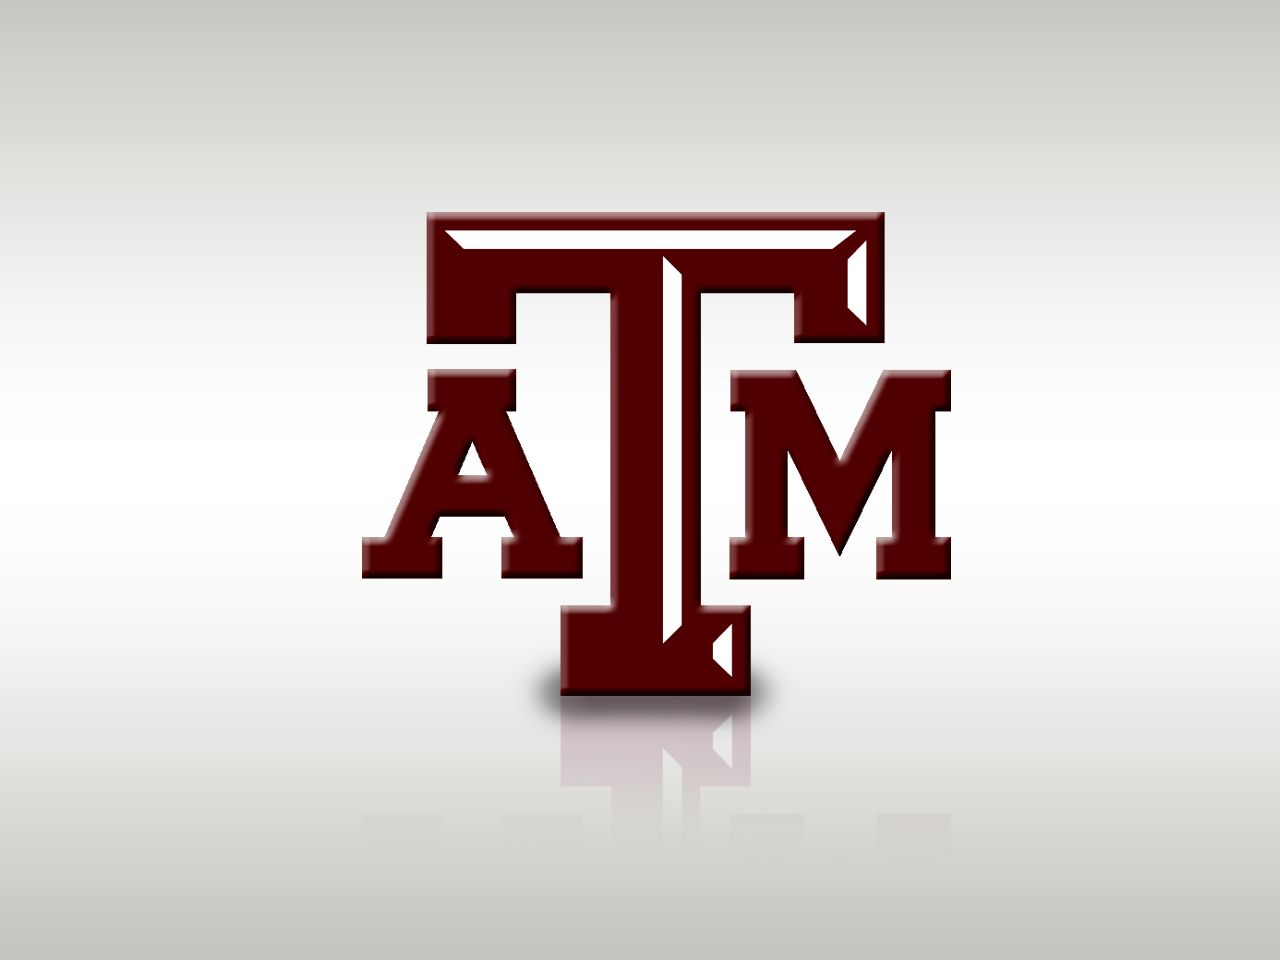 Texas A&M Desktop Wallpaper - Texas A&M Aggies